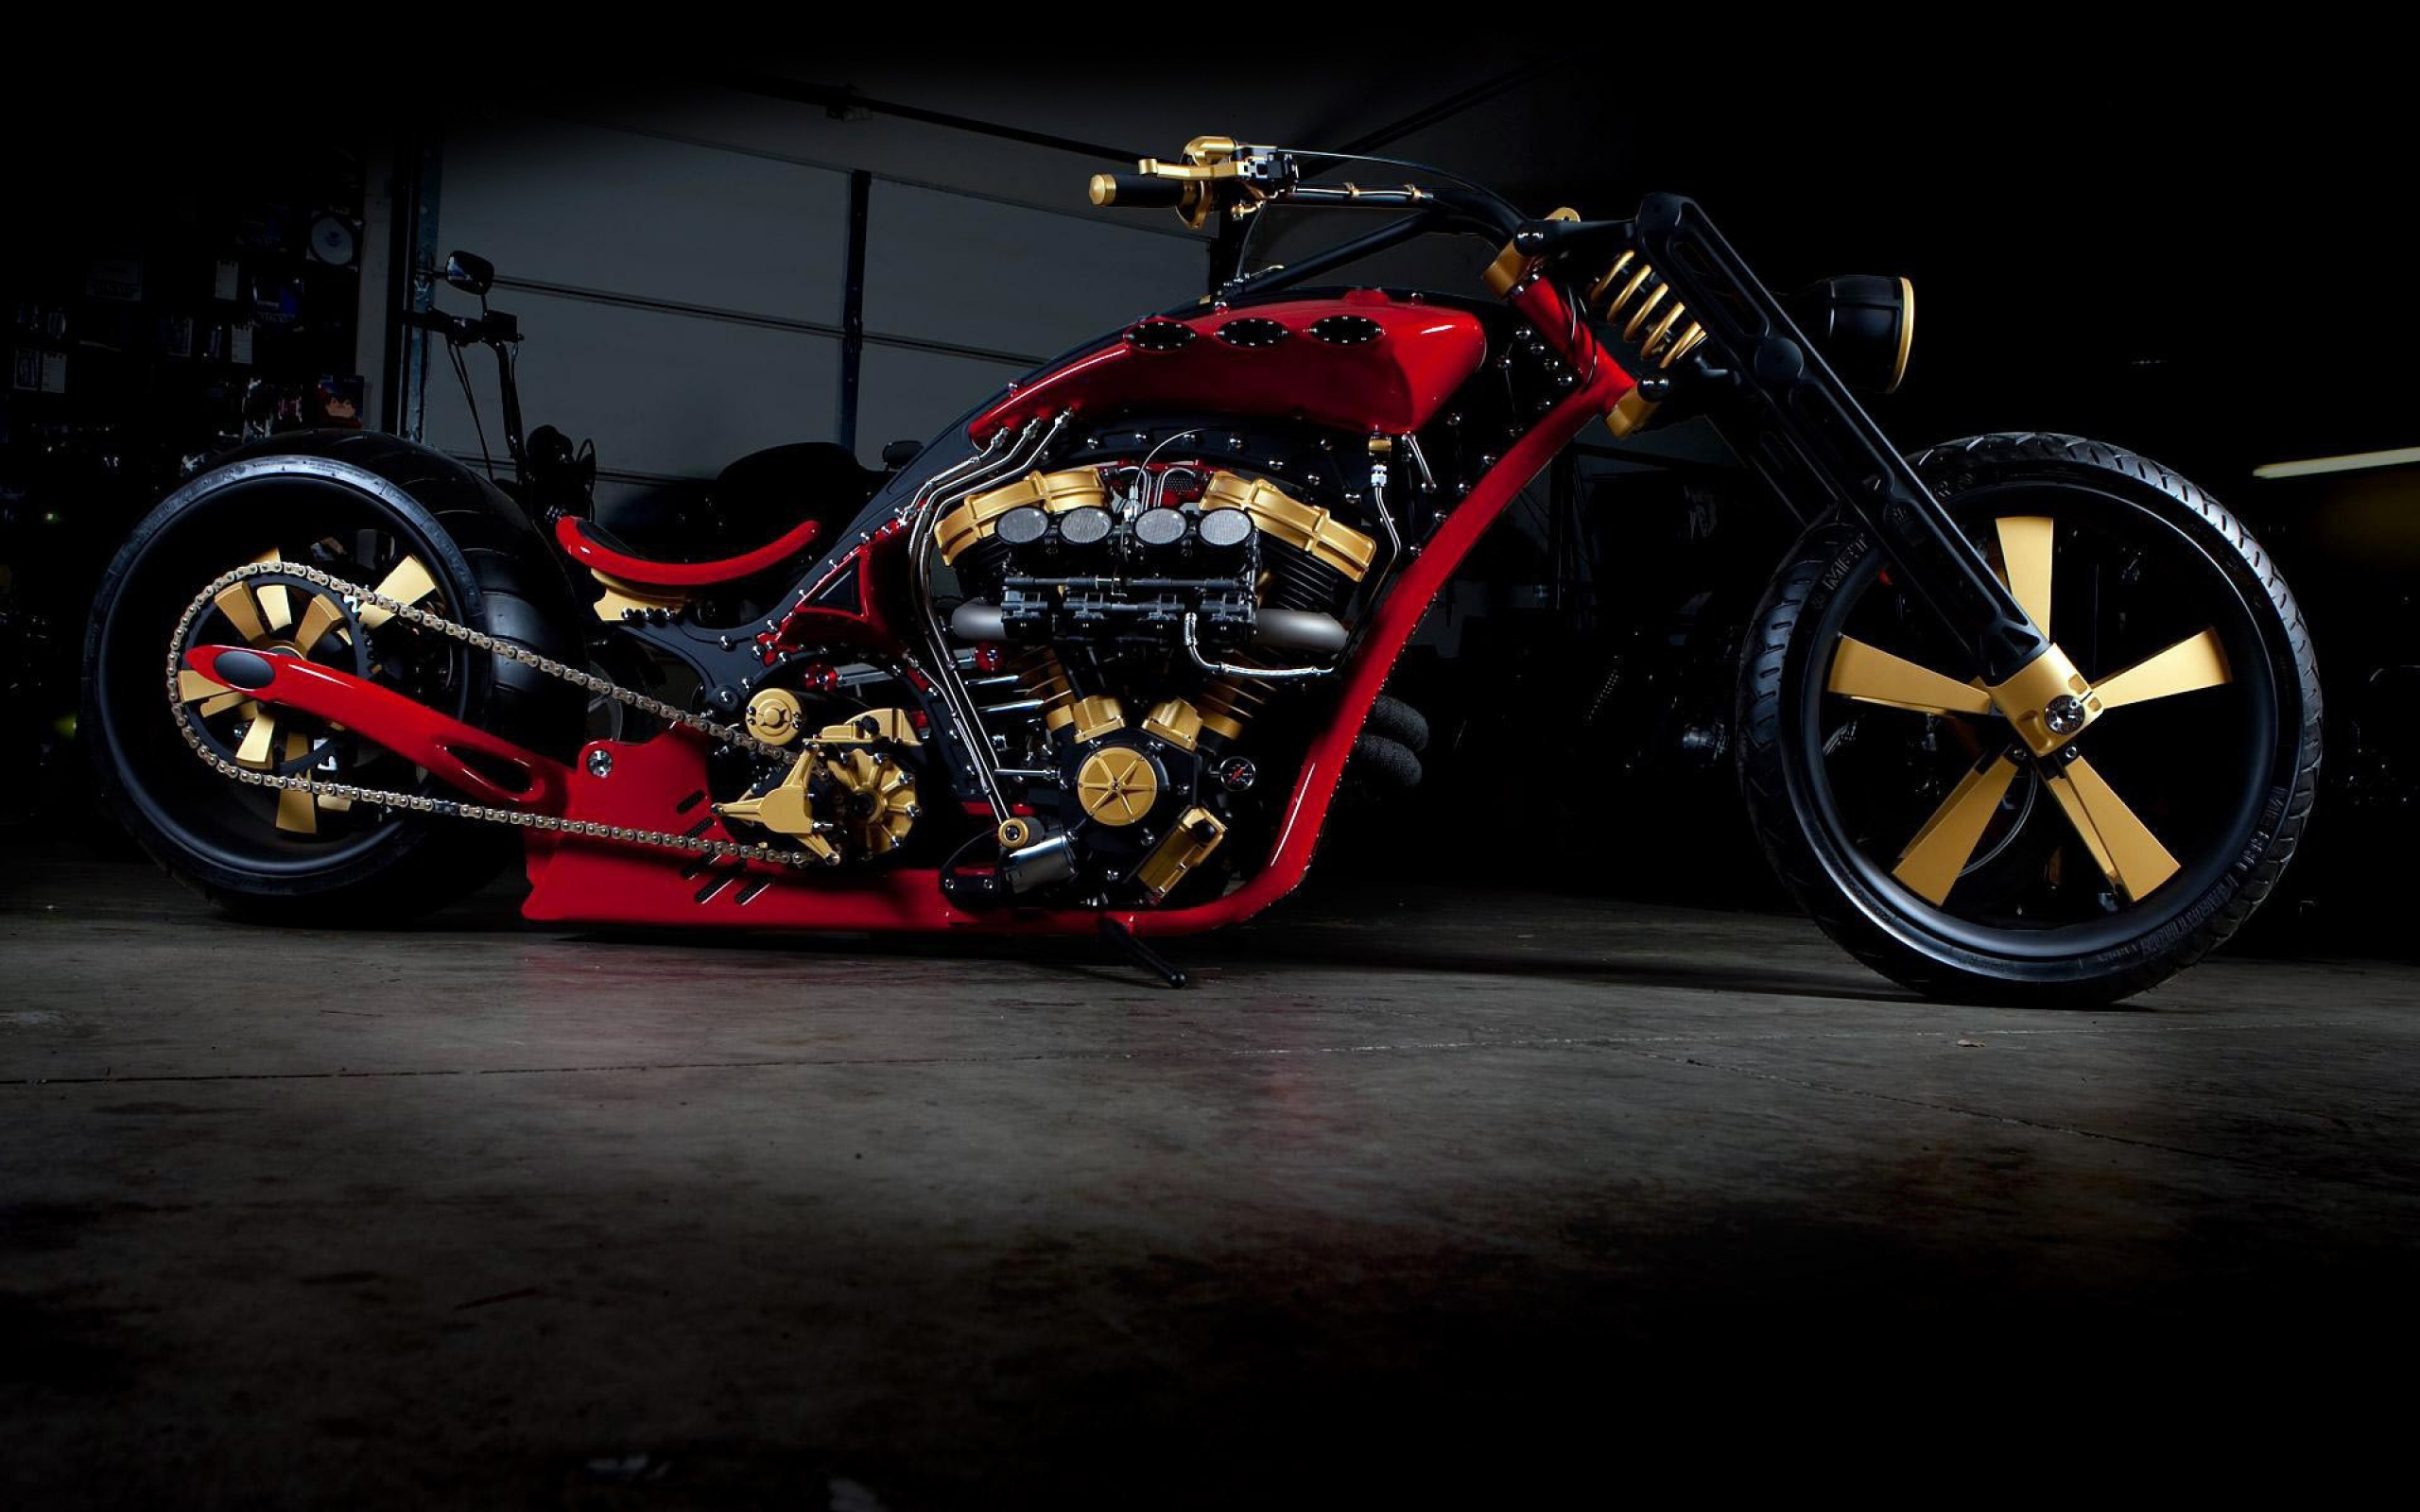 Image: Chopper, bike, black, chain, tuning, style, engine